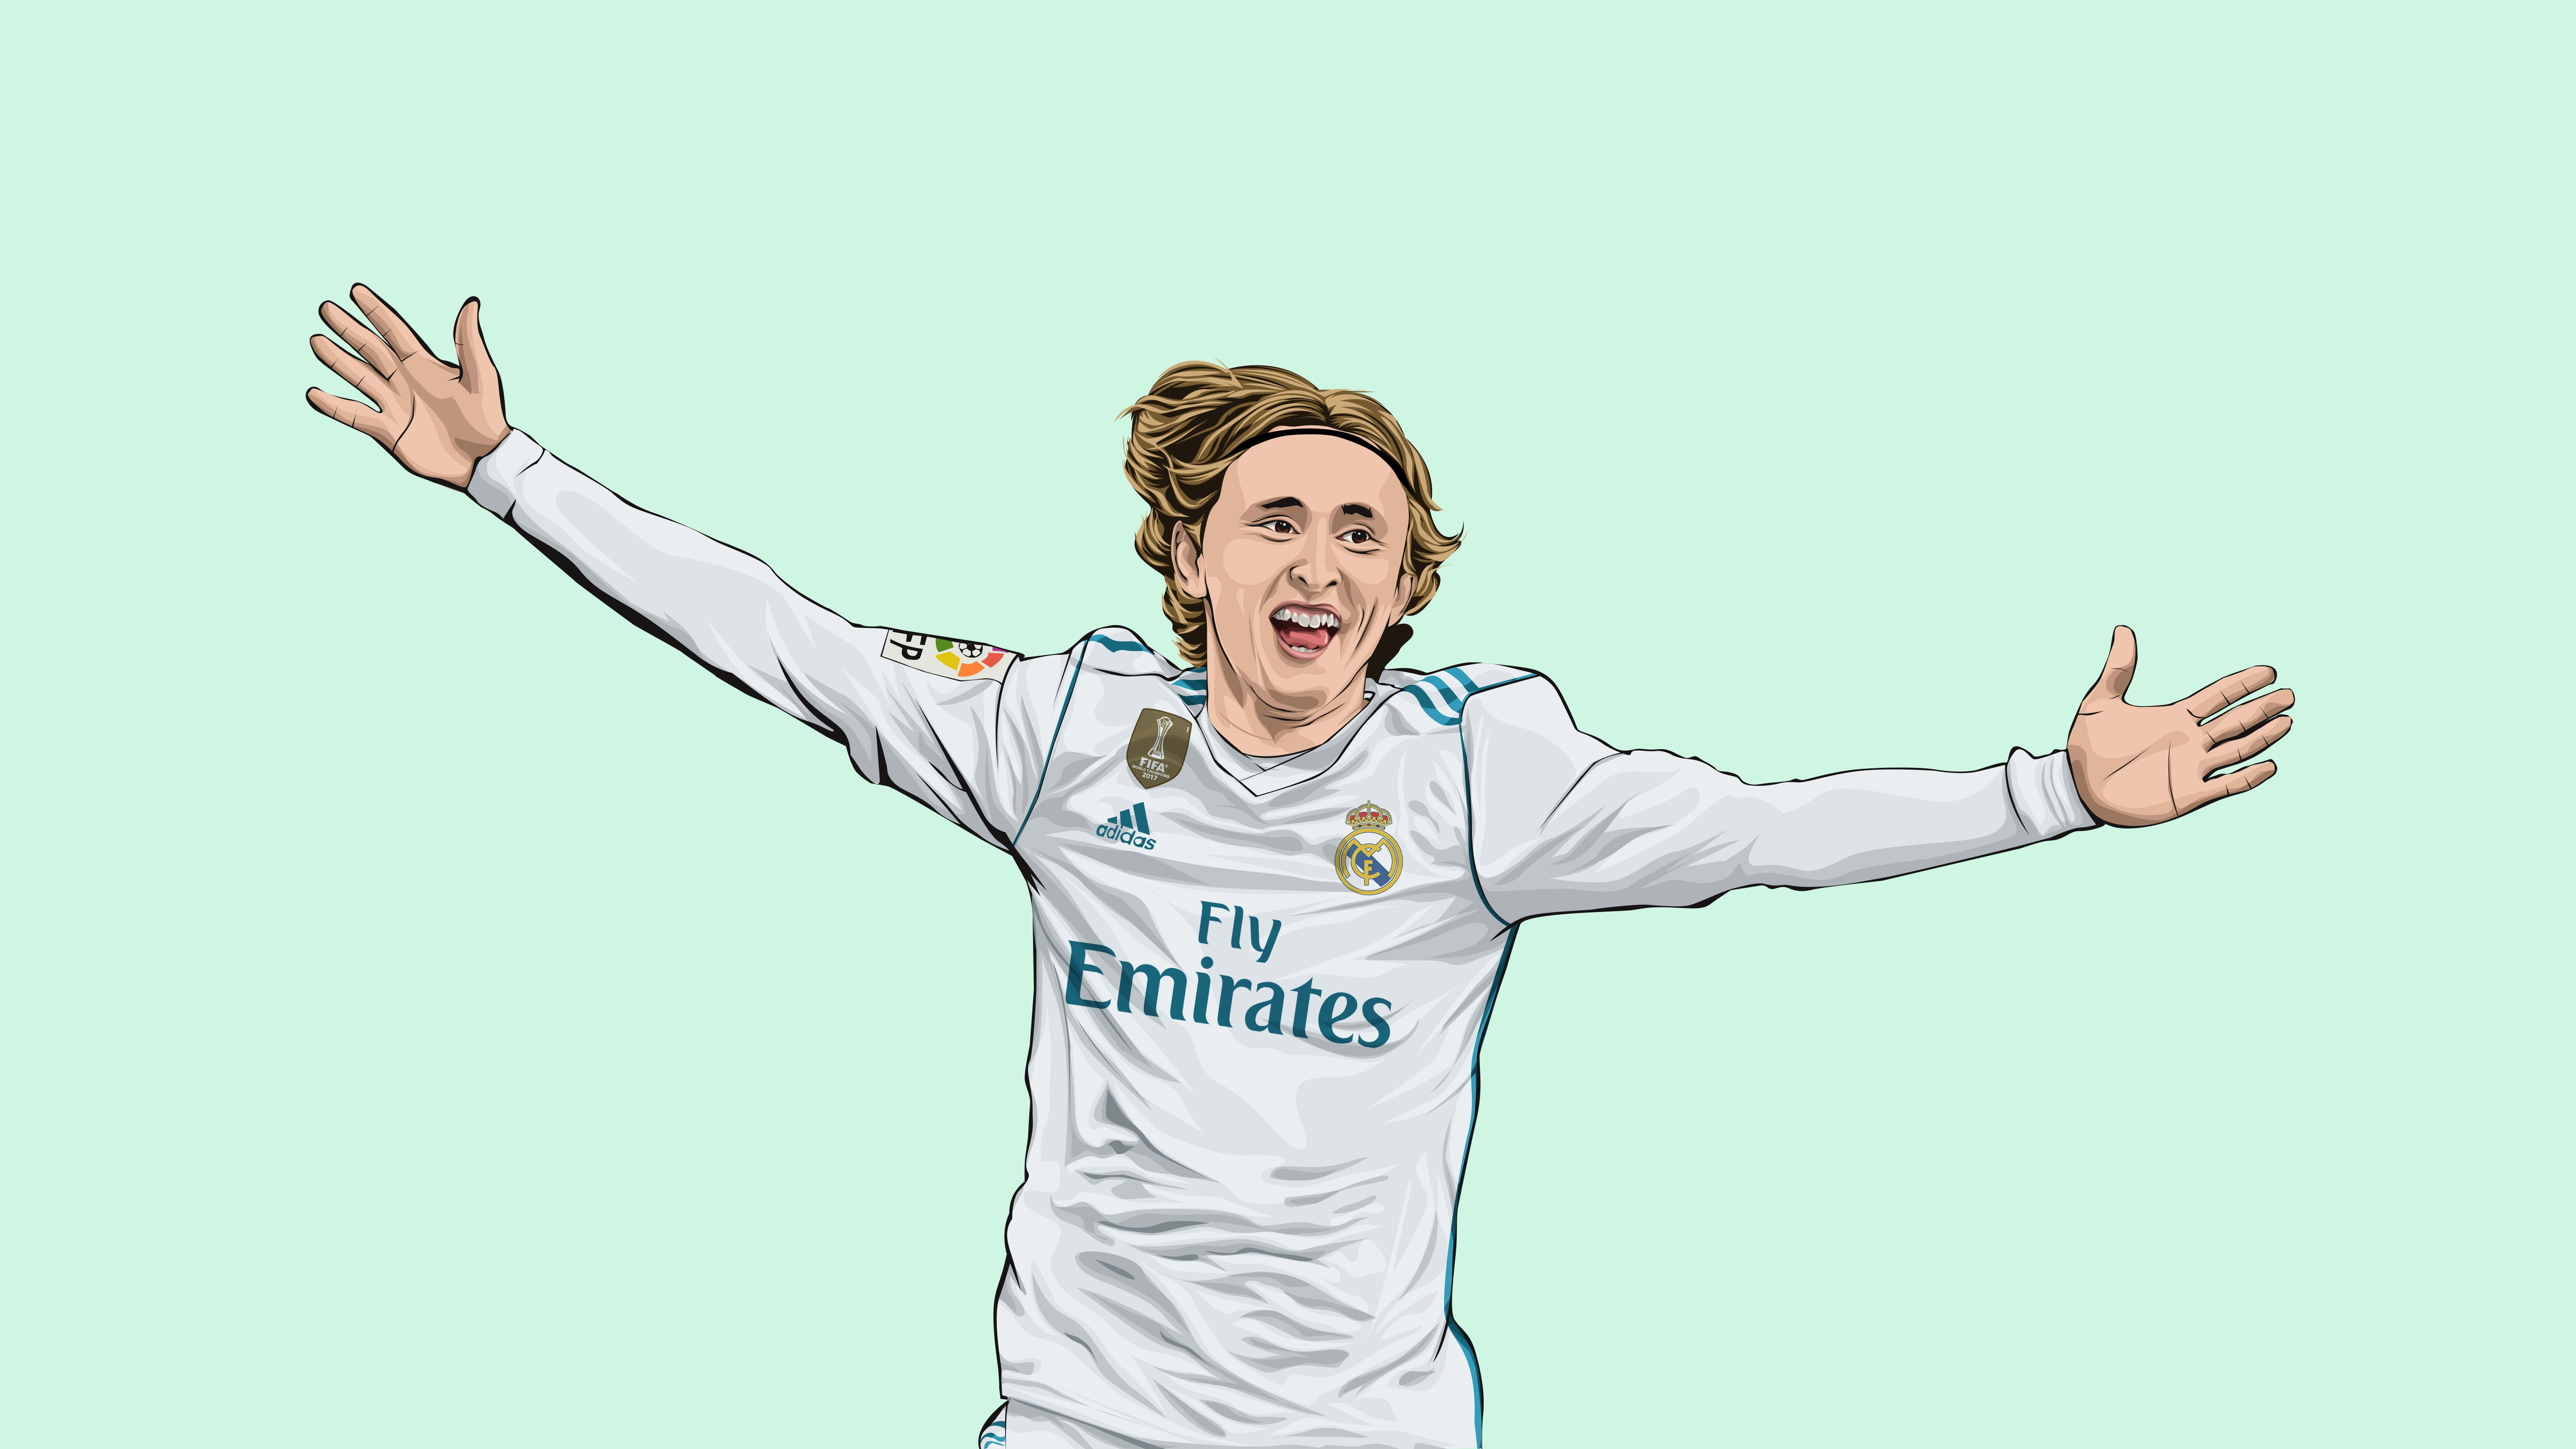 Kmgdesign I Will Draw A Awesome Your Cartoon Potrait For 5 On Fiverr Com In 2020 Football Poster Cartoon Real Madrid